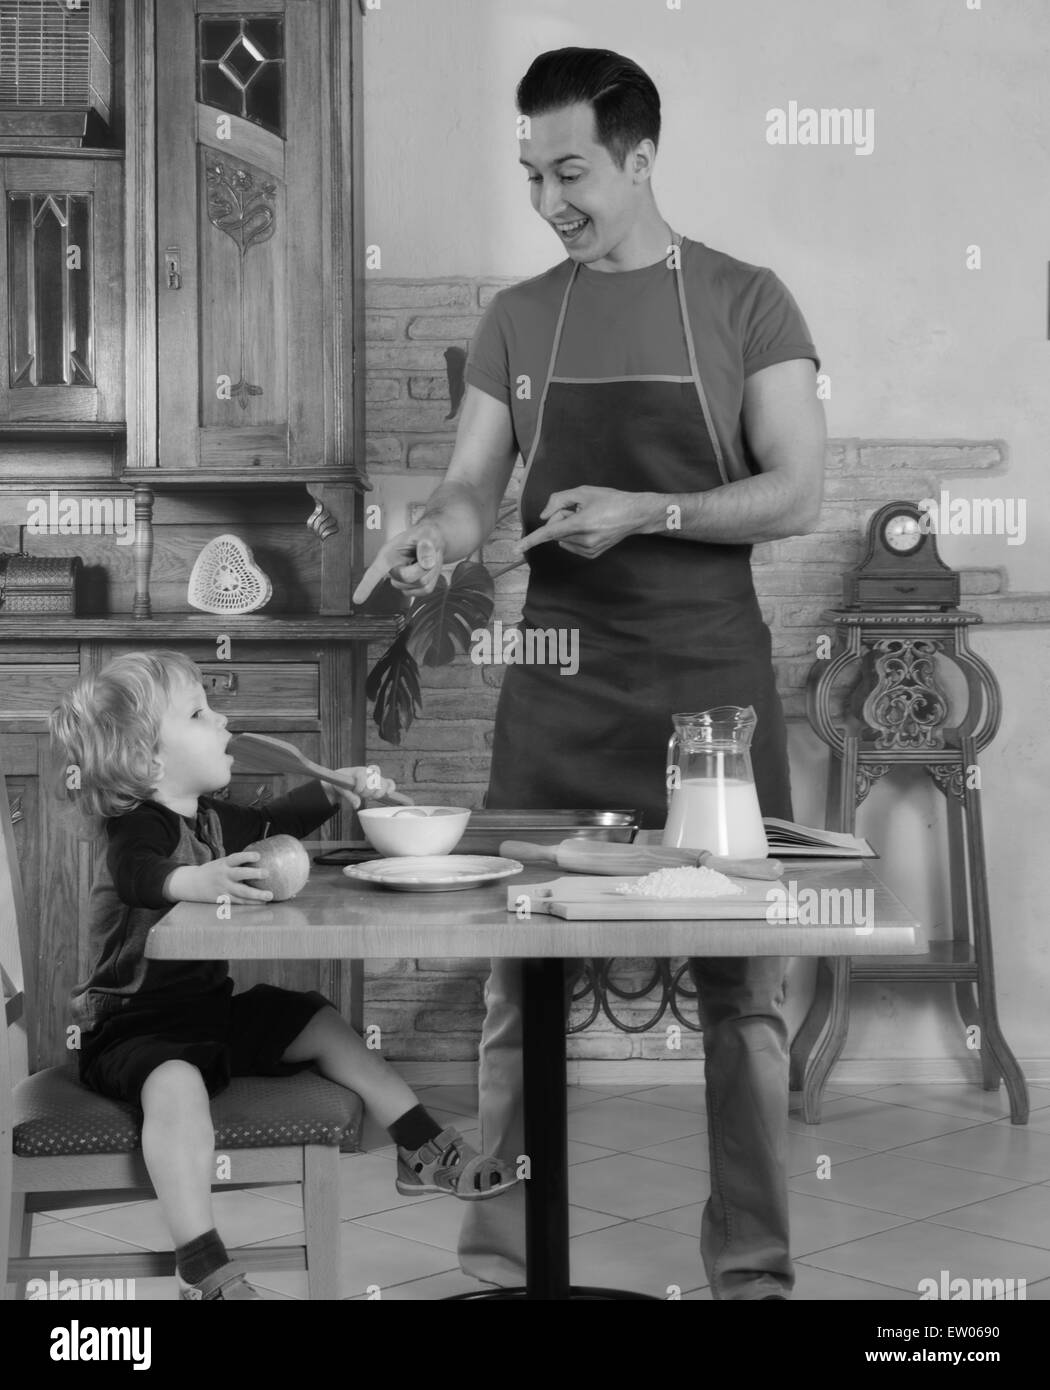 Dad cooks a breakfast - Stock Image